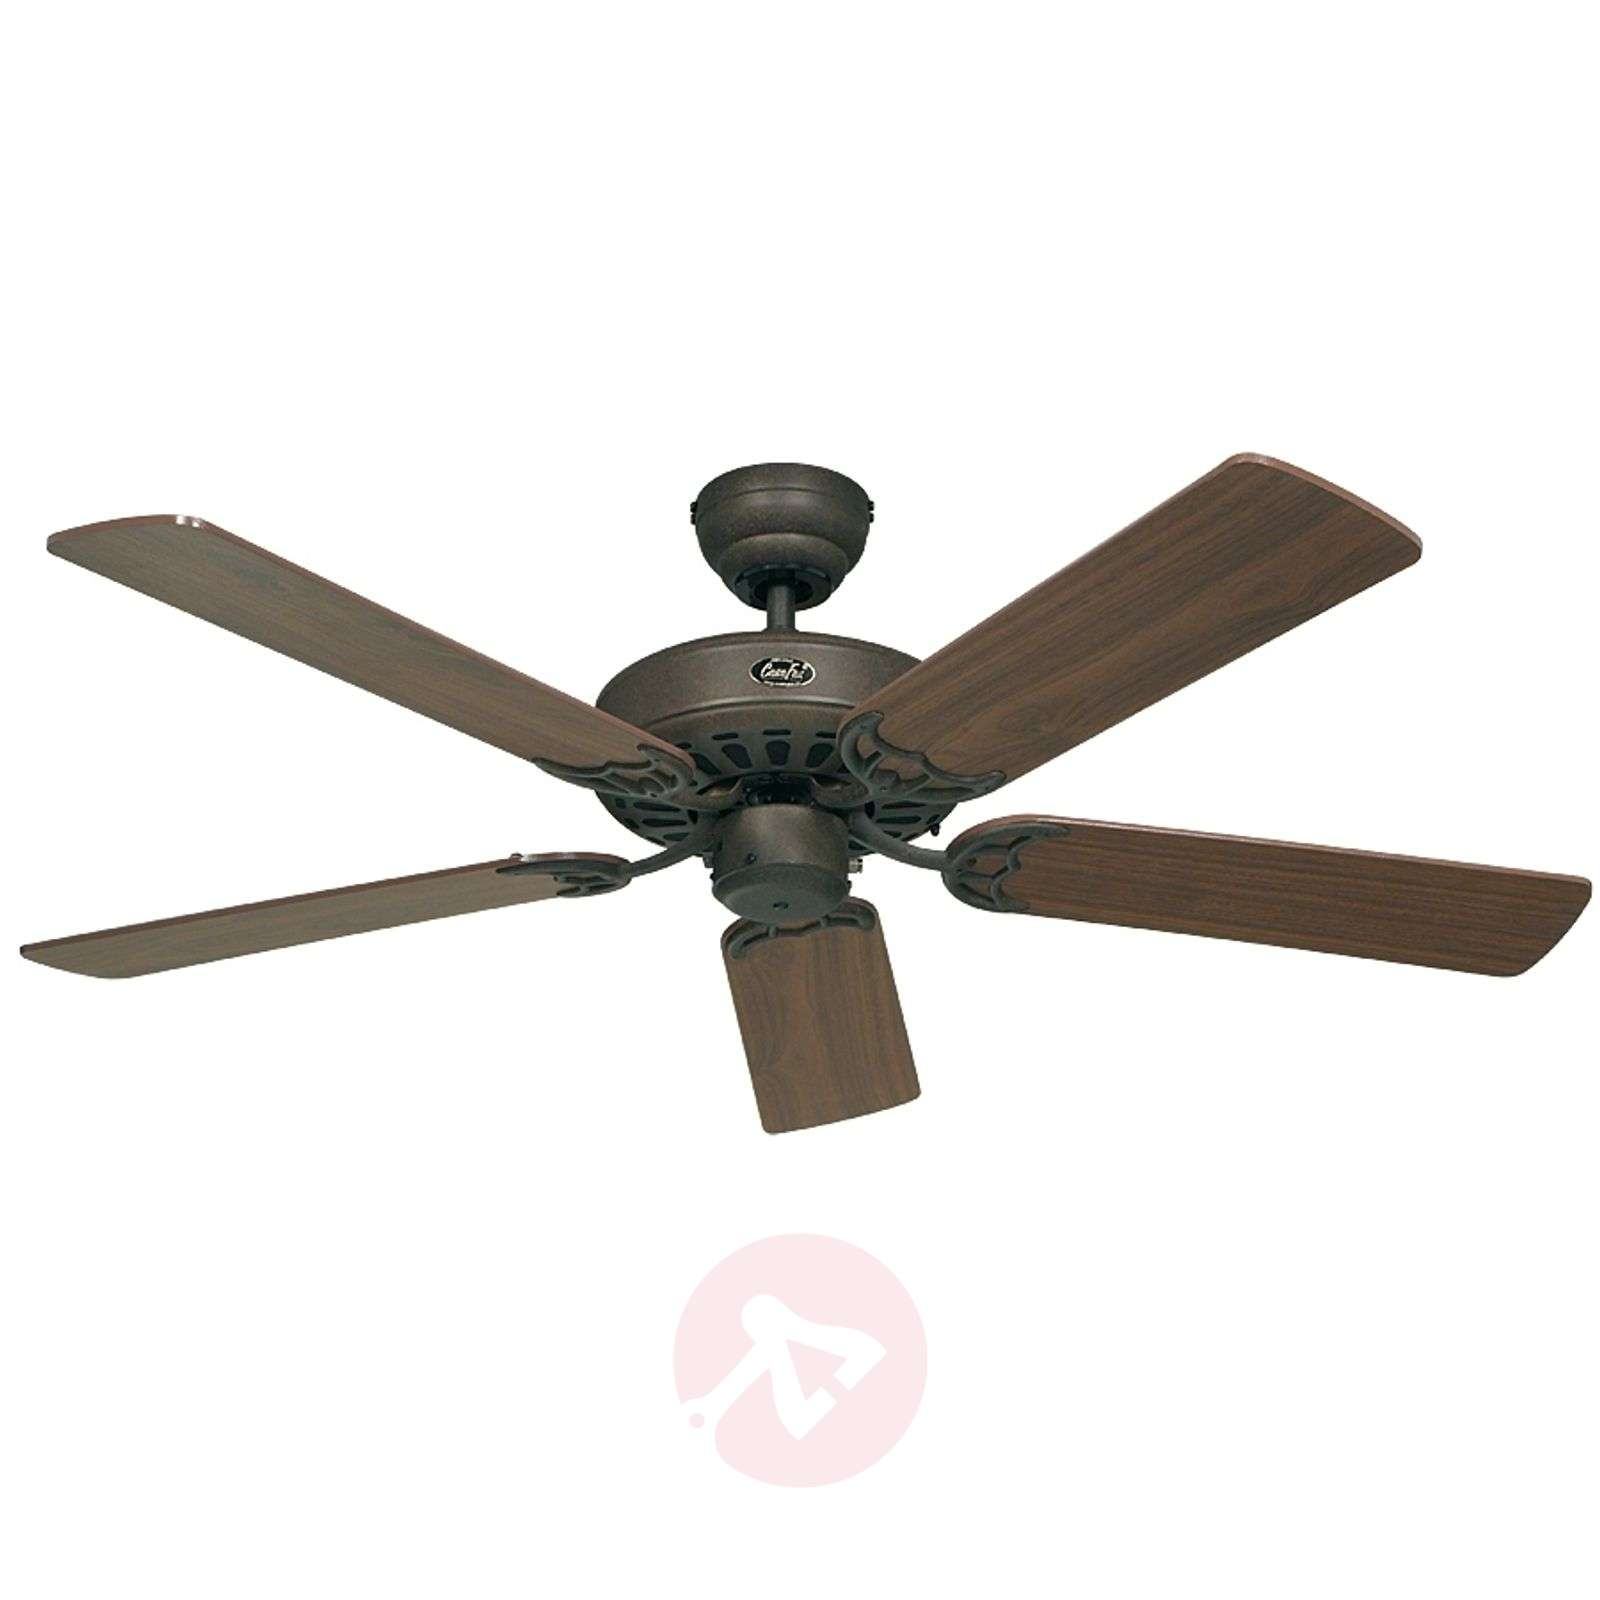 awesome fans stylish ceilings ceiling fan herownwings for singapore outdoor corner co mount ideas lovely design patio mounted